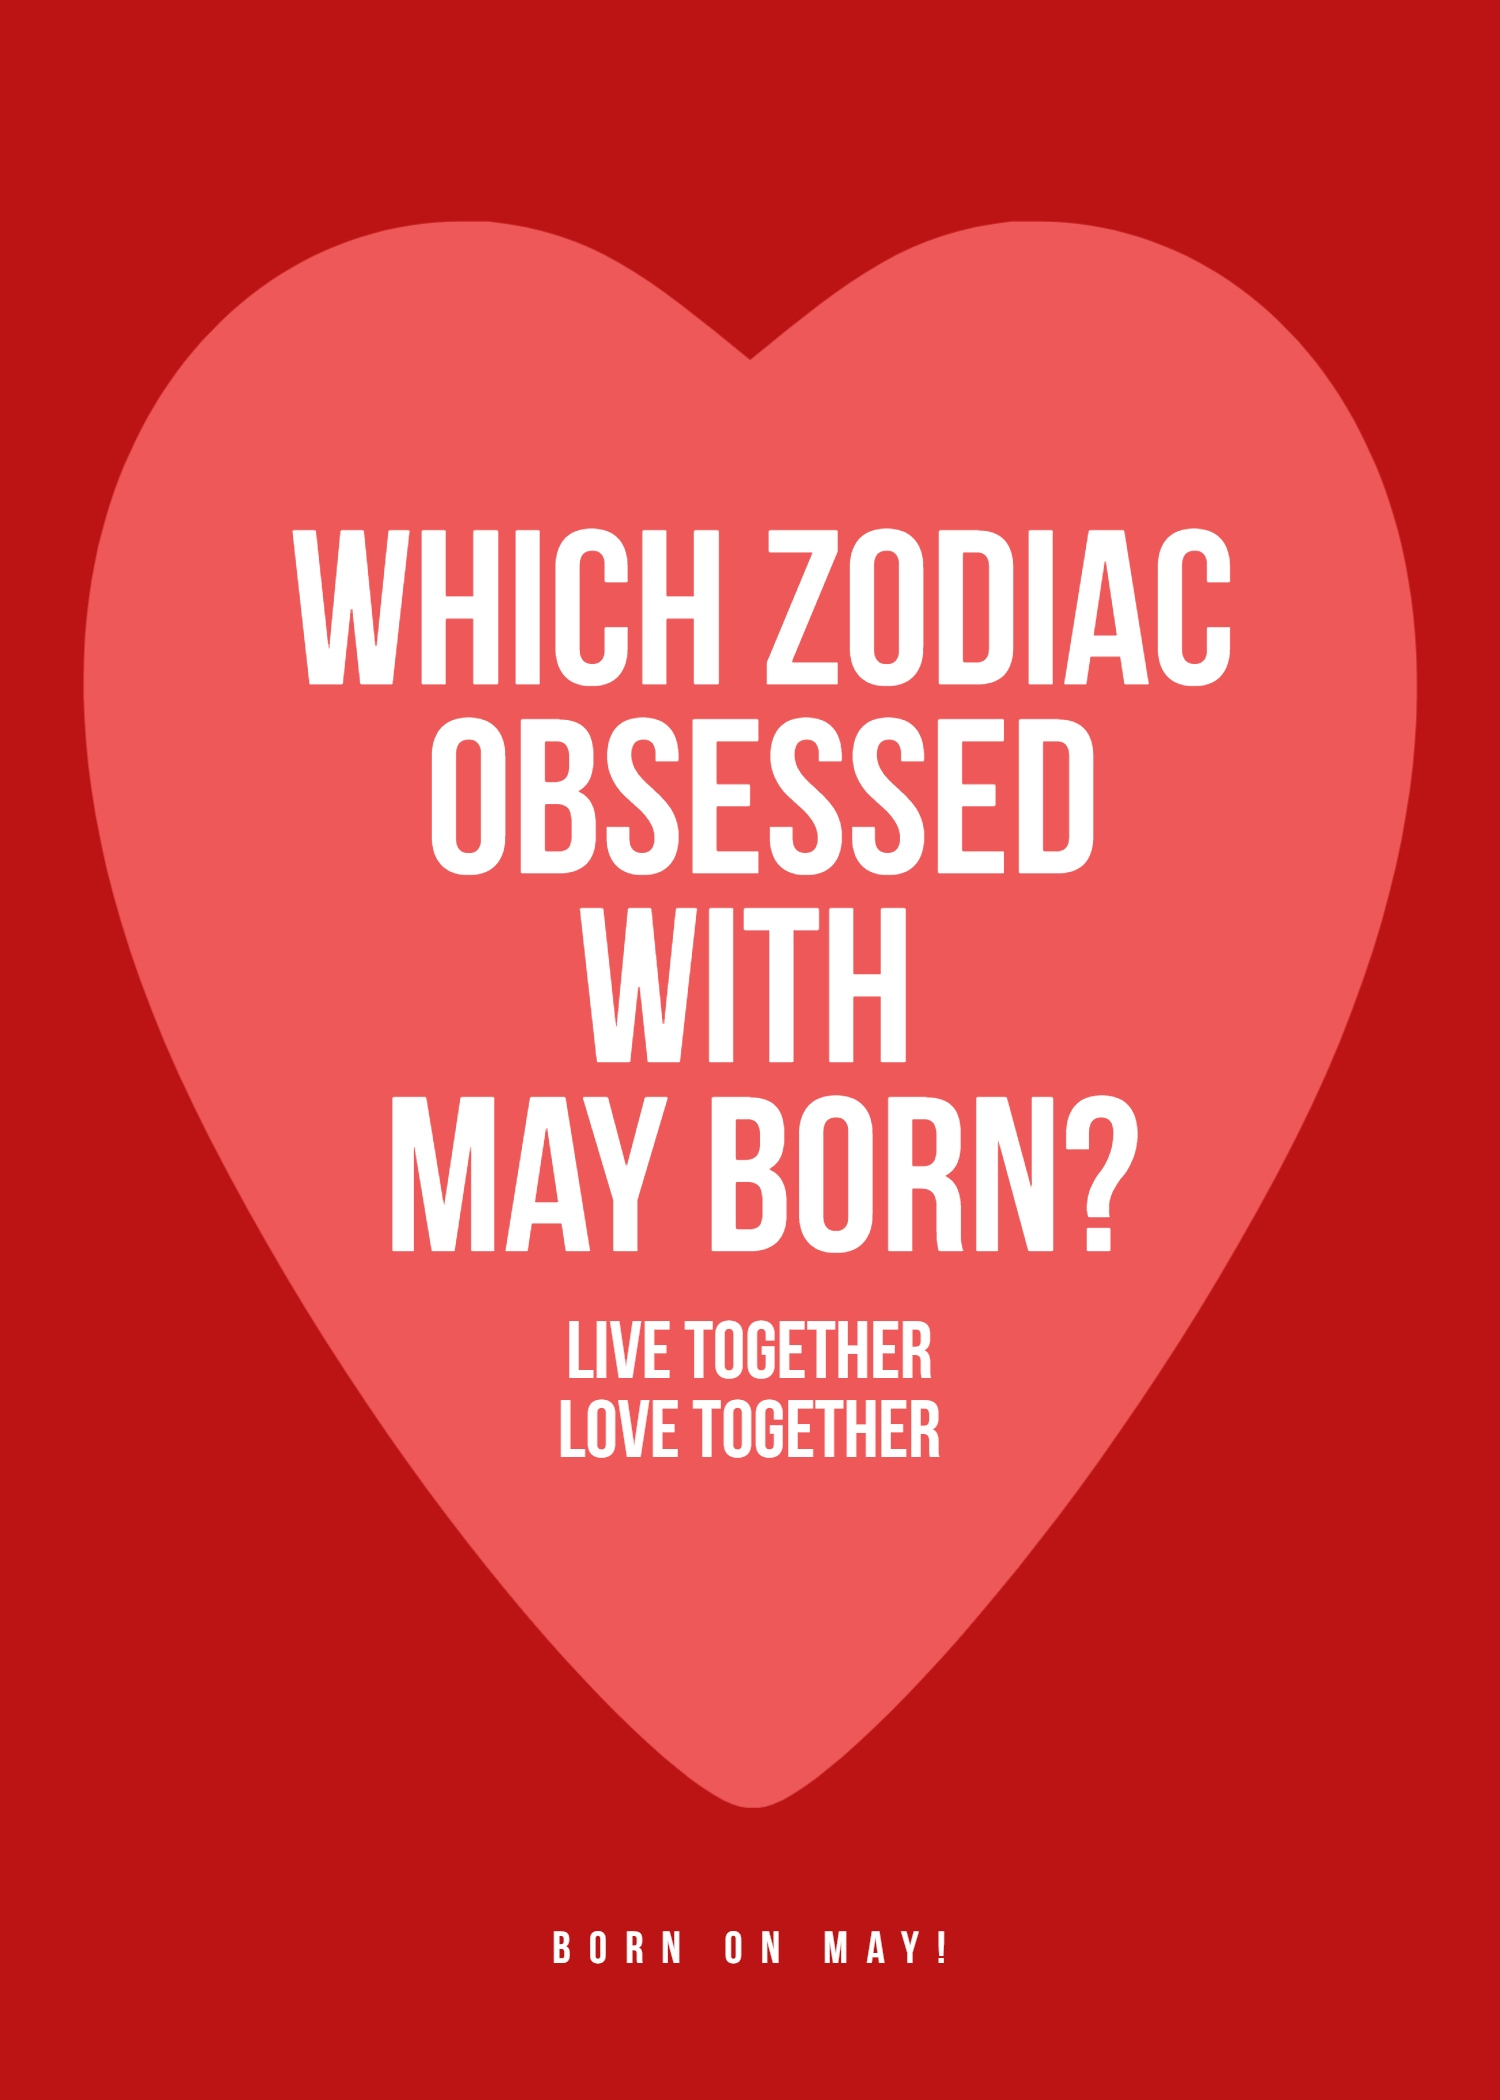 zodiac may born love life